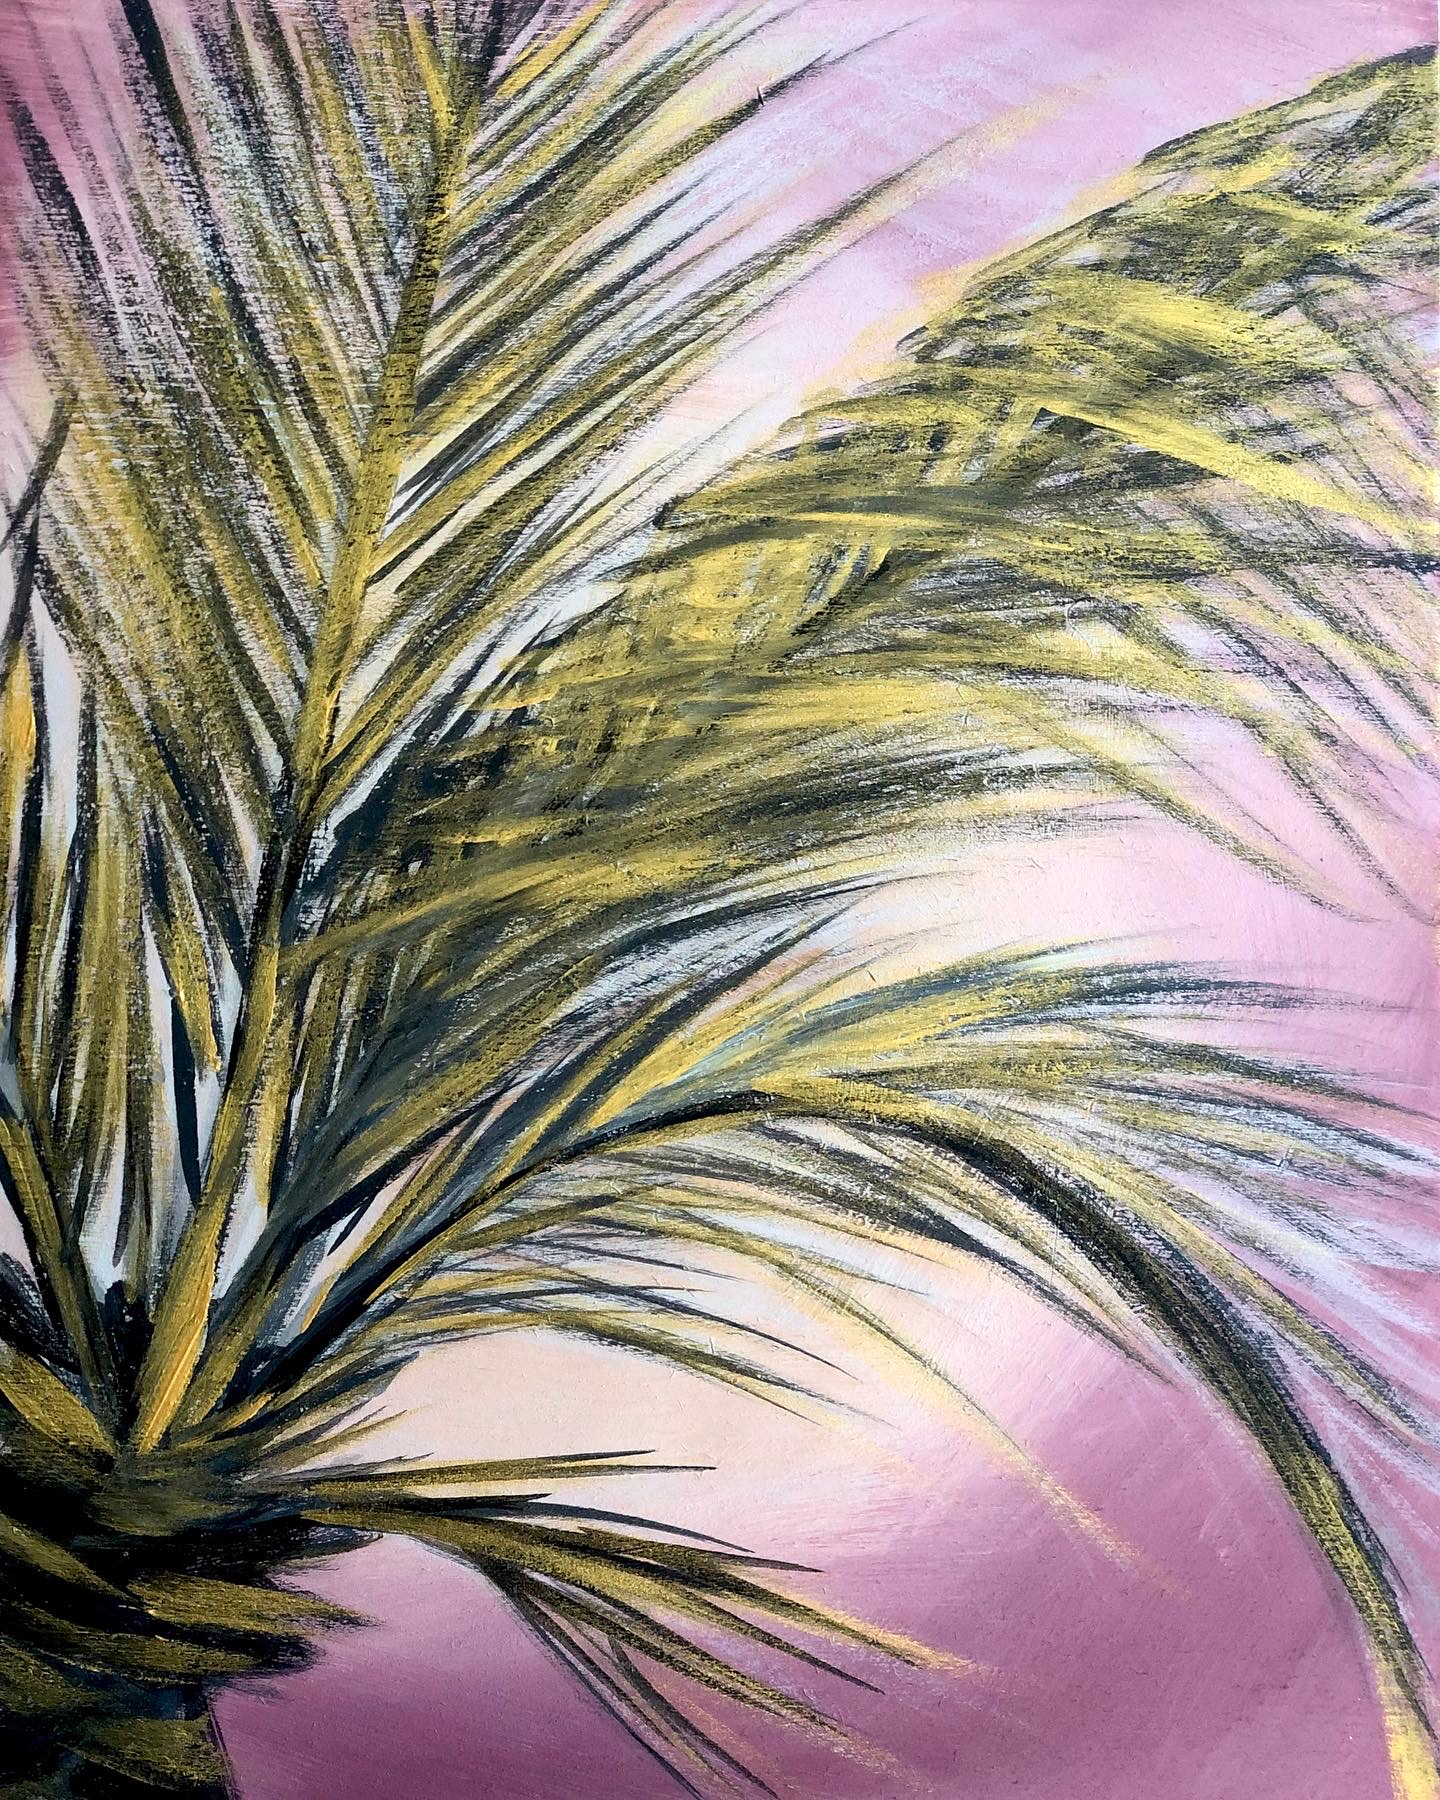 gilded palm